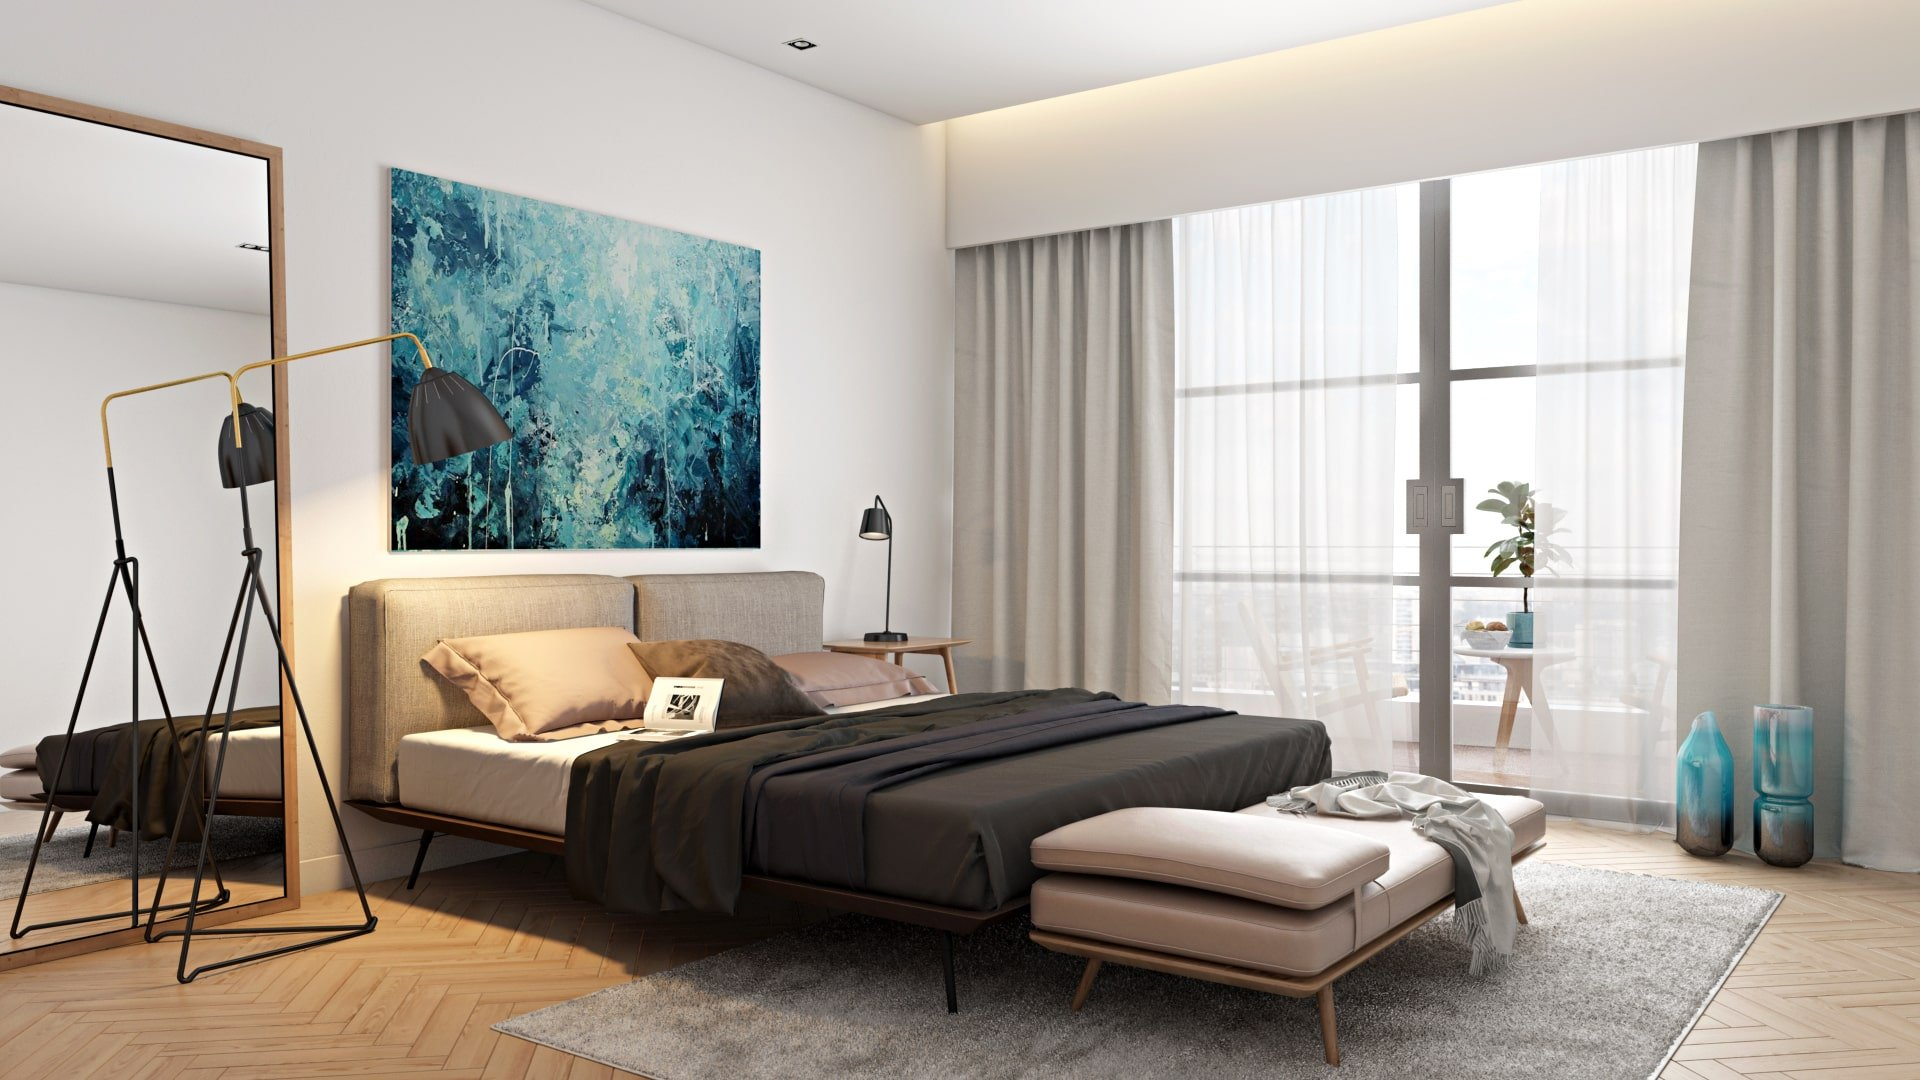 3D Visualization of an Elegant Bedroom